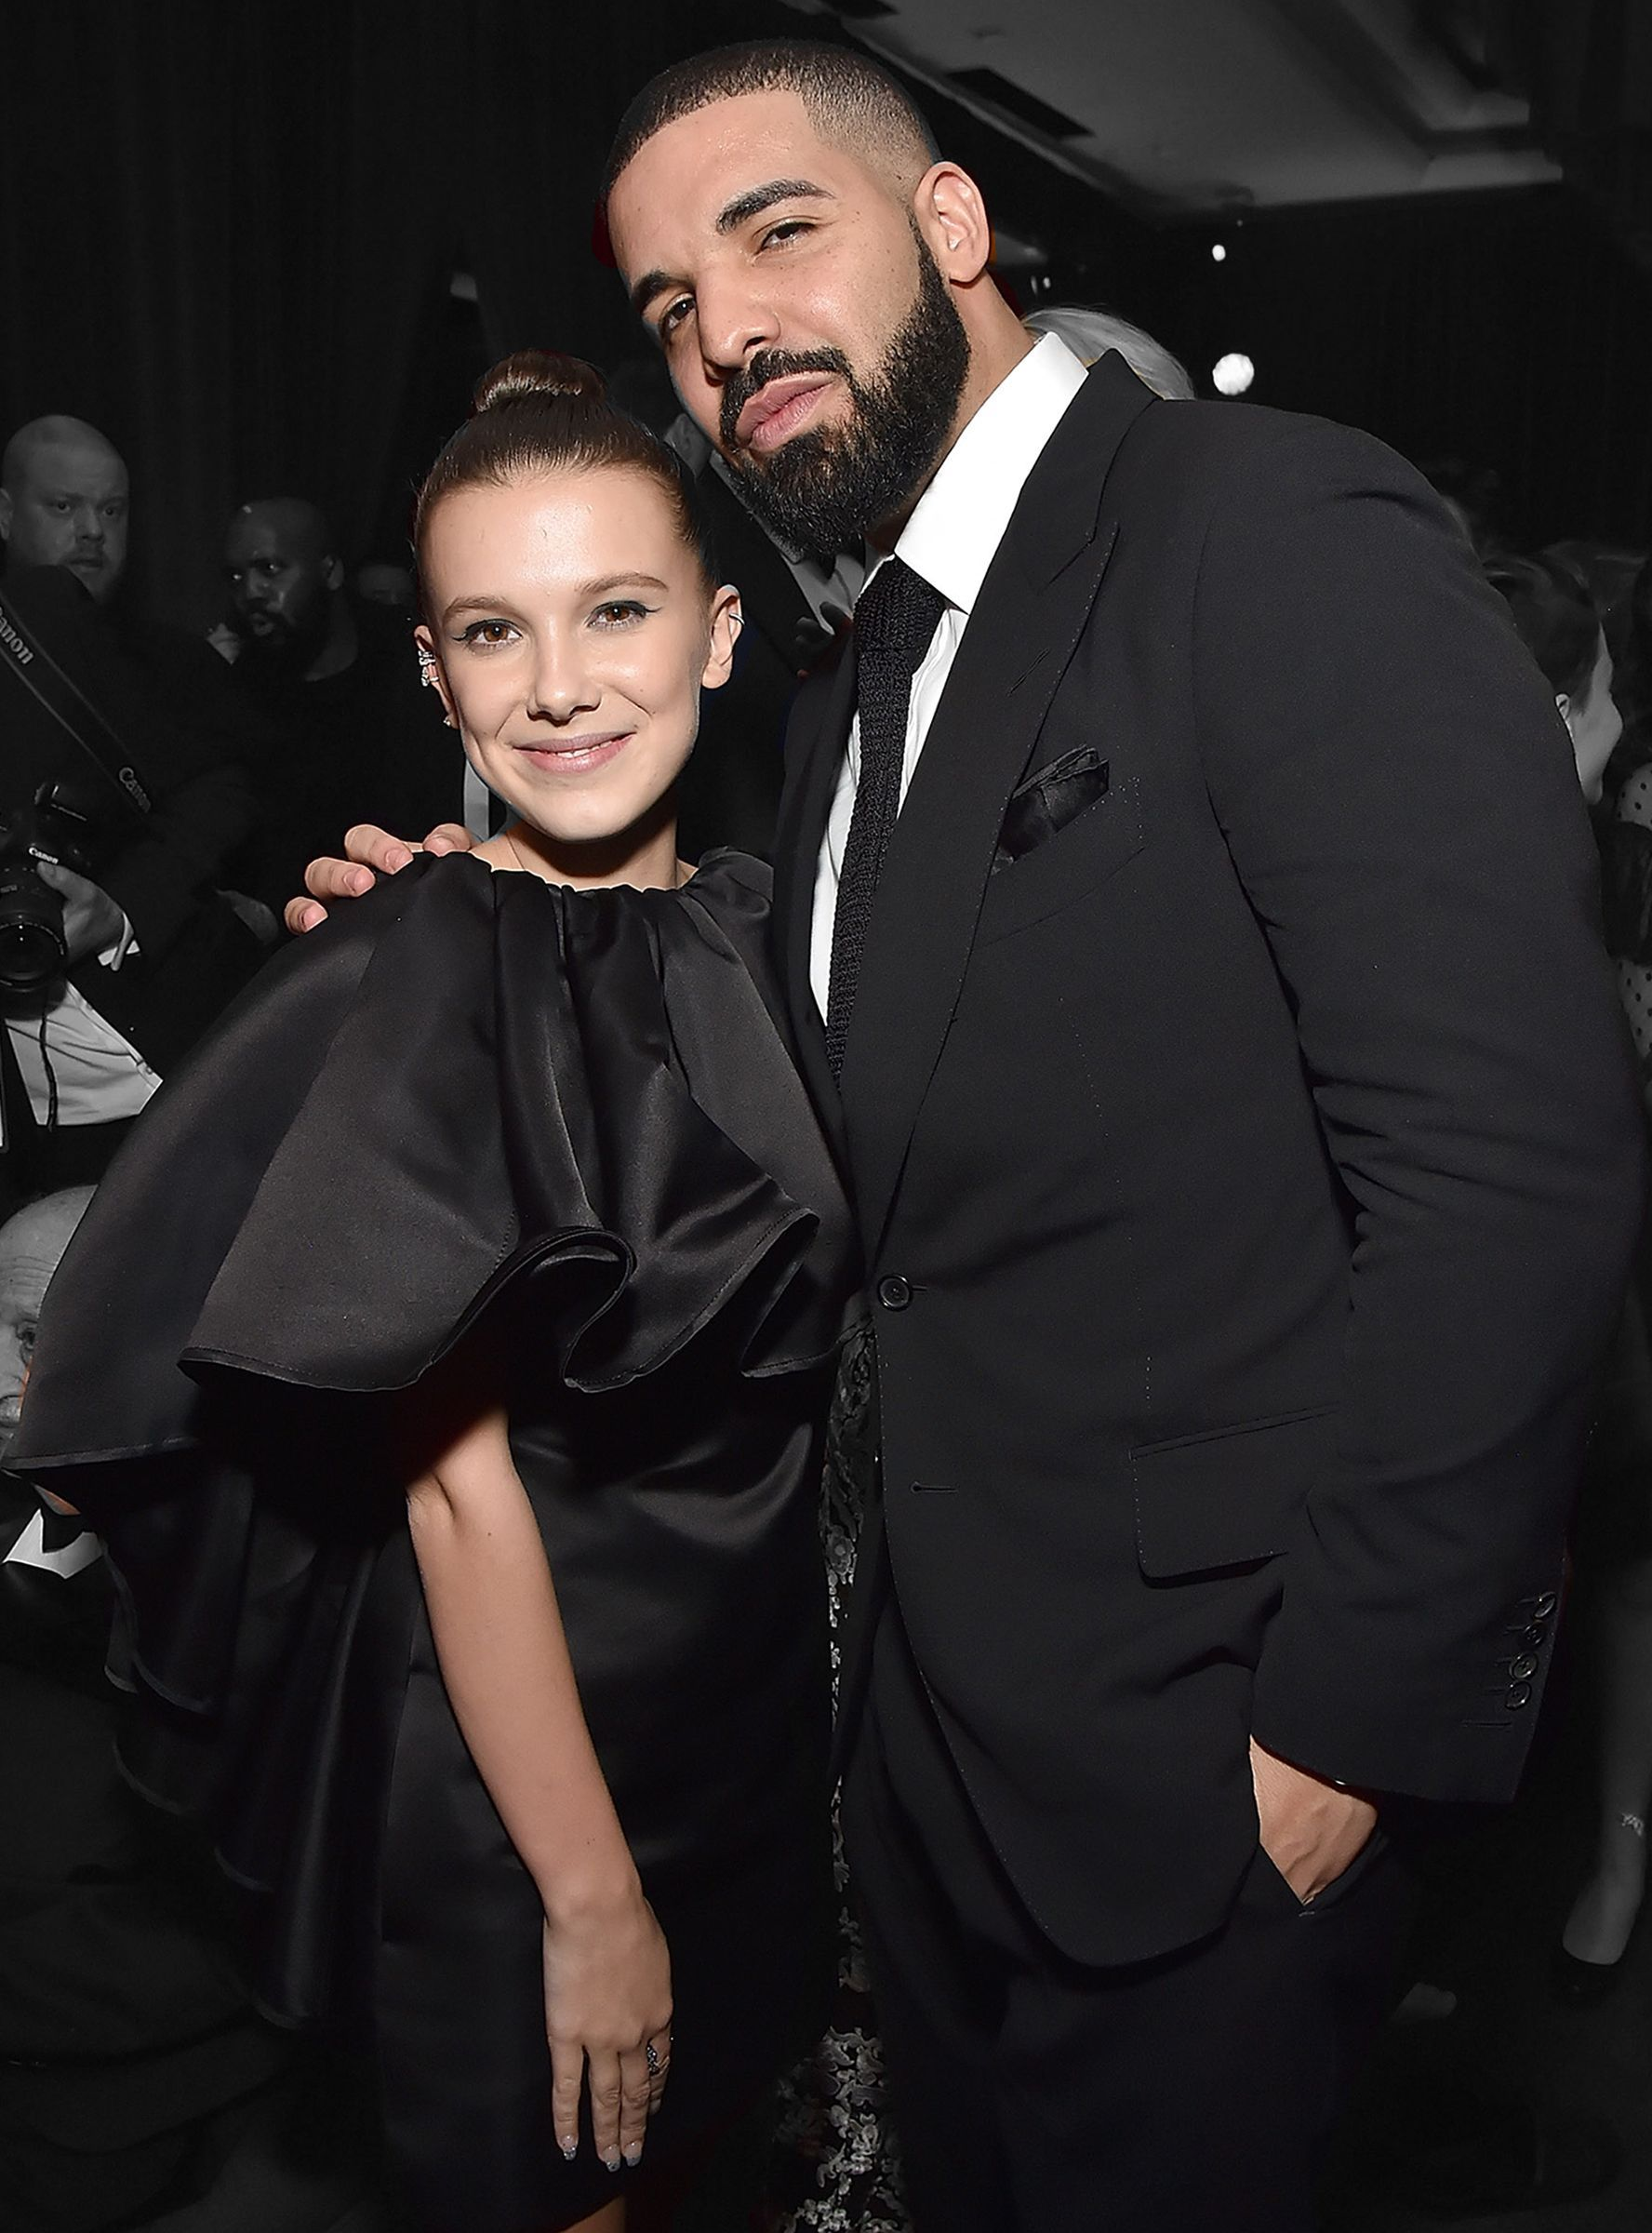 The Incredible True Story Of Millie Bobby Brown Drake S Best Friendship Millie Bobby Brown Bobby Brown The Incredible True Story